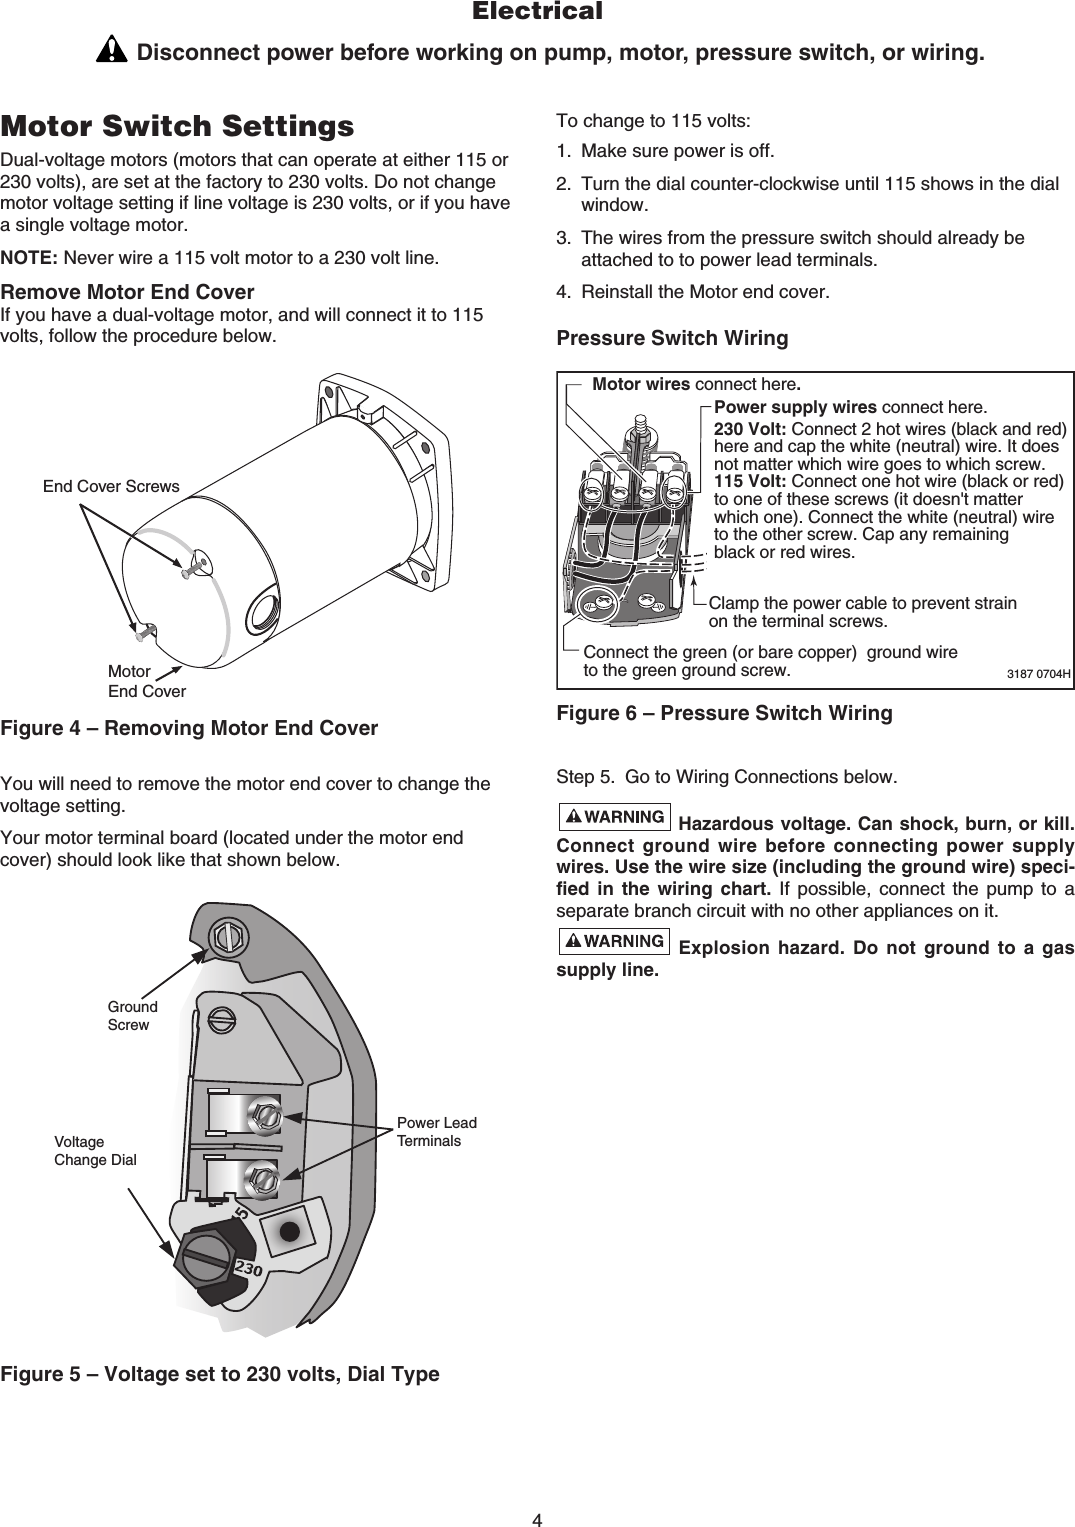 hight resolution of dual voltage motor wiring diagram